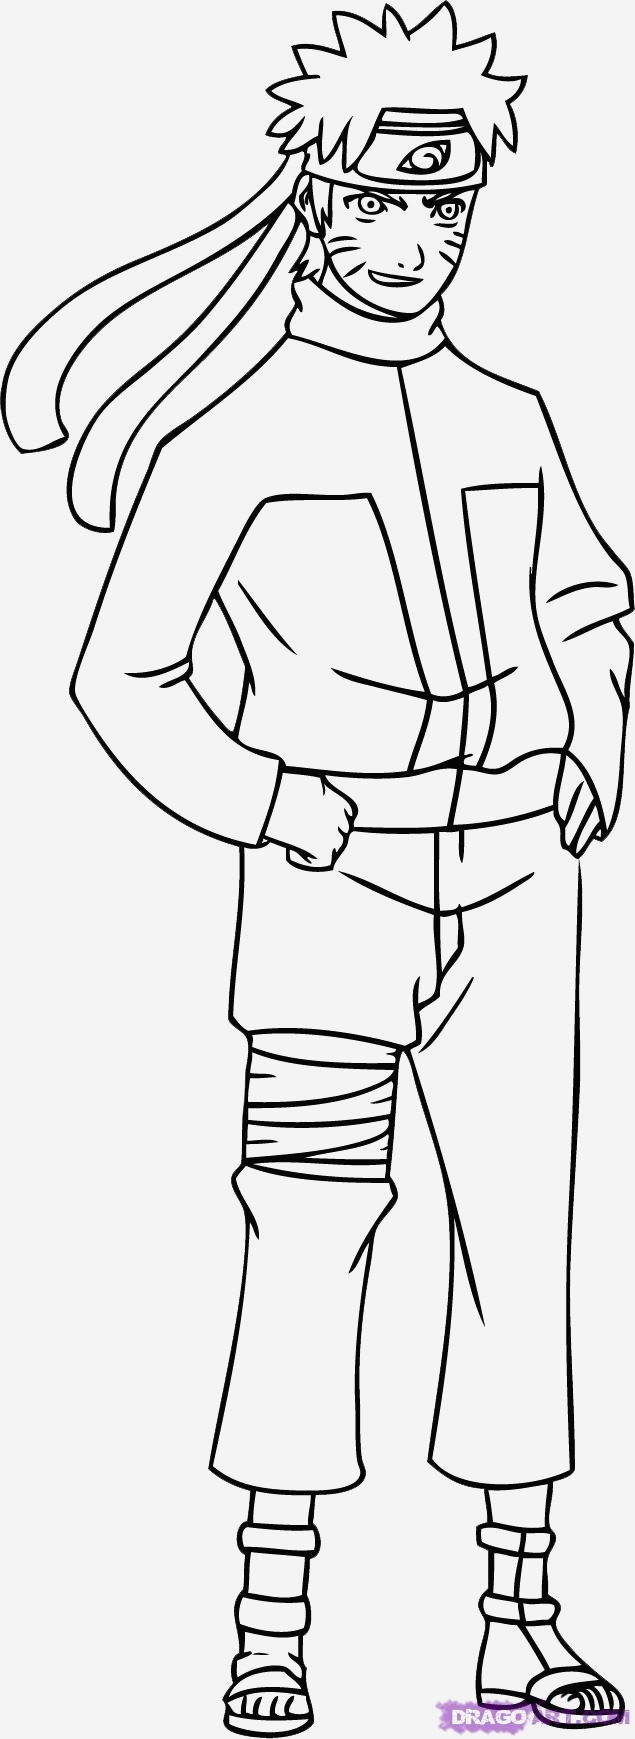 Coloriage Naruto Shippuden Unique Naruto Drawing Coloring Pages 2yamaha Of Coloriage Naruto Shippuden